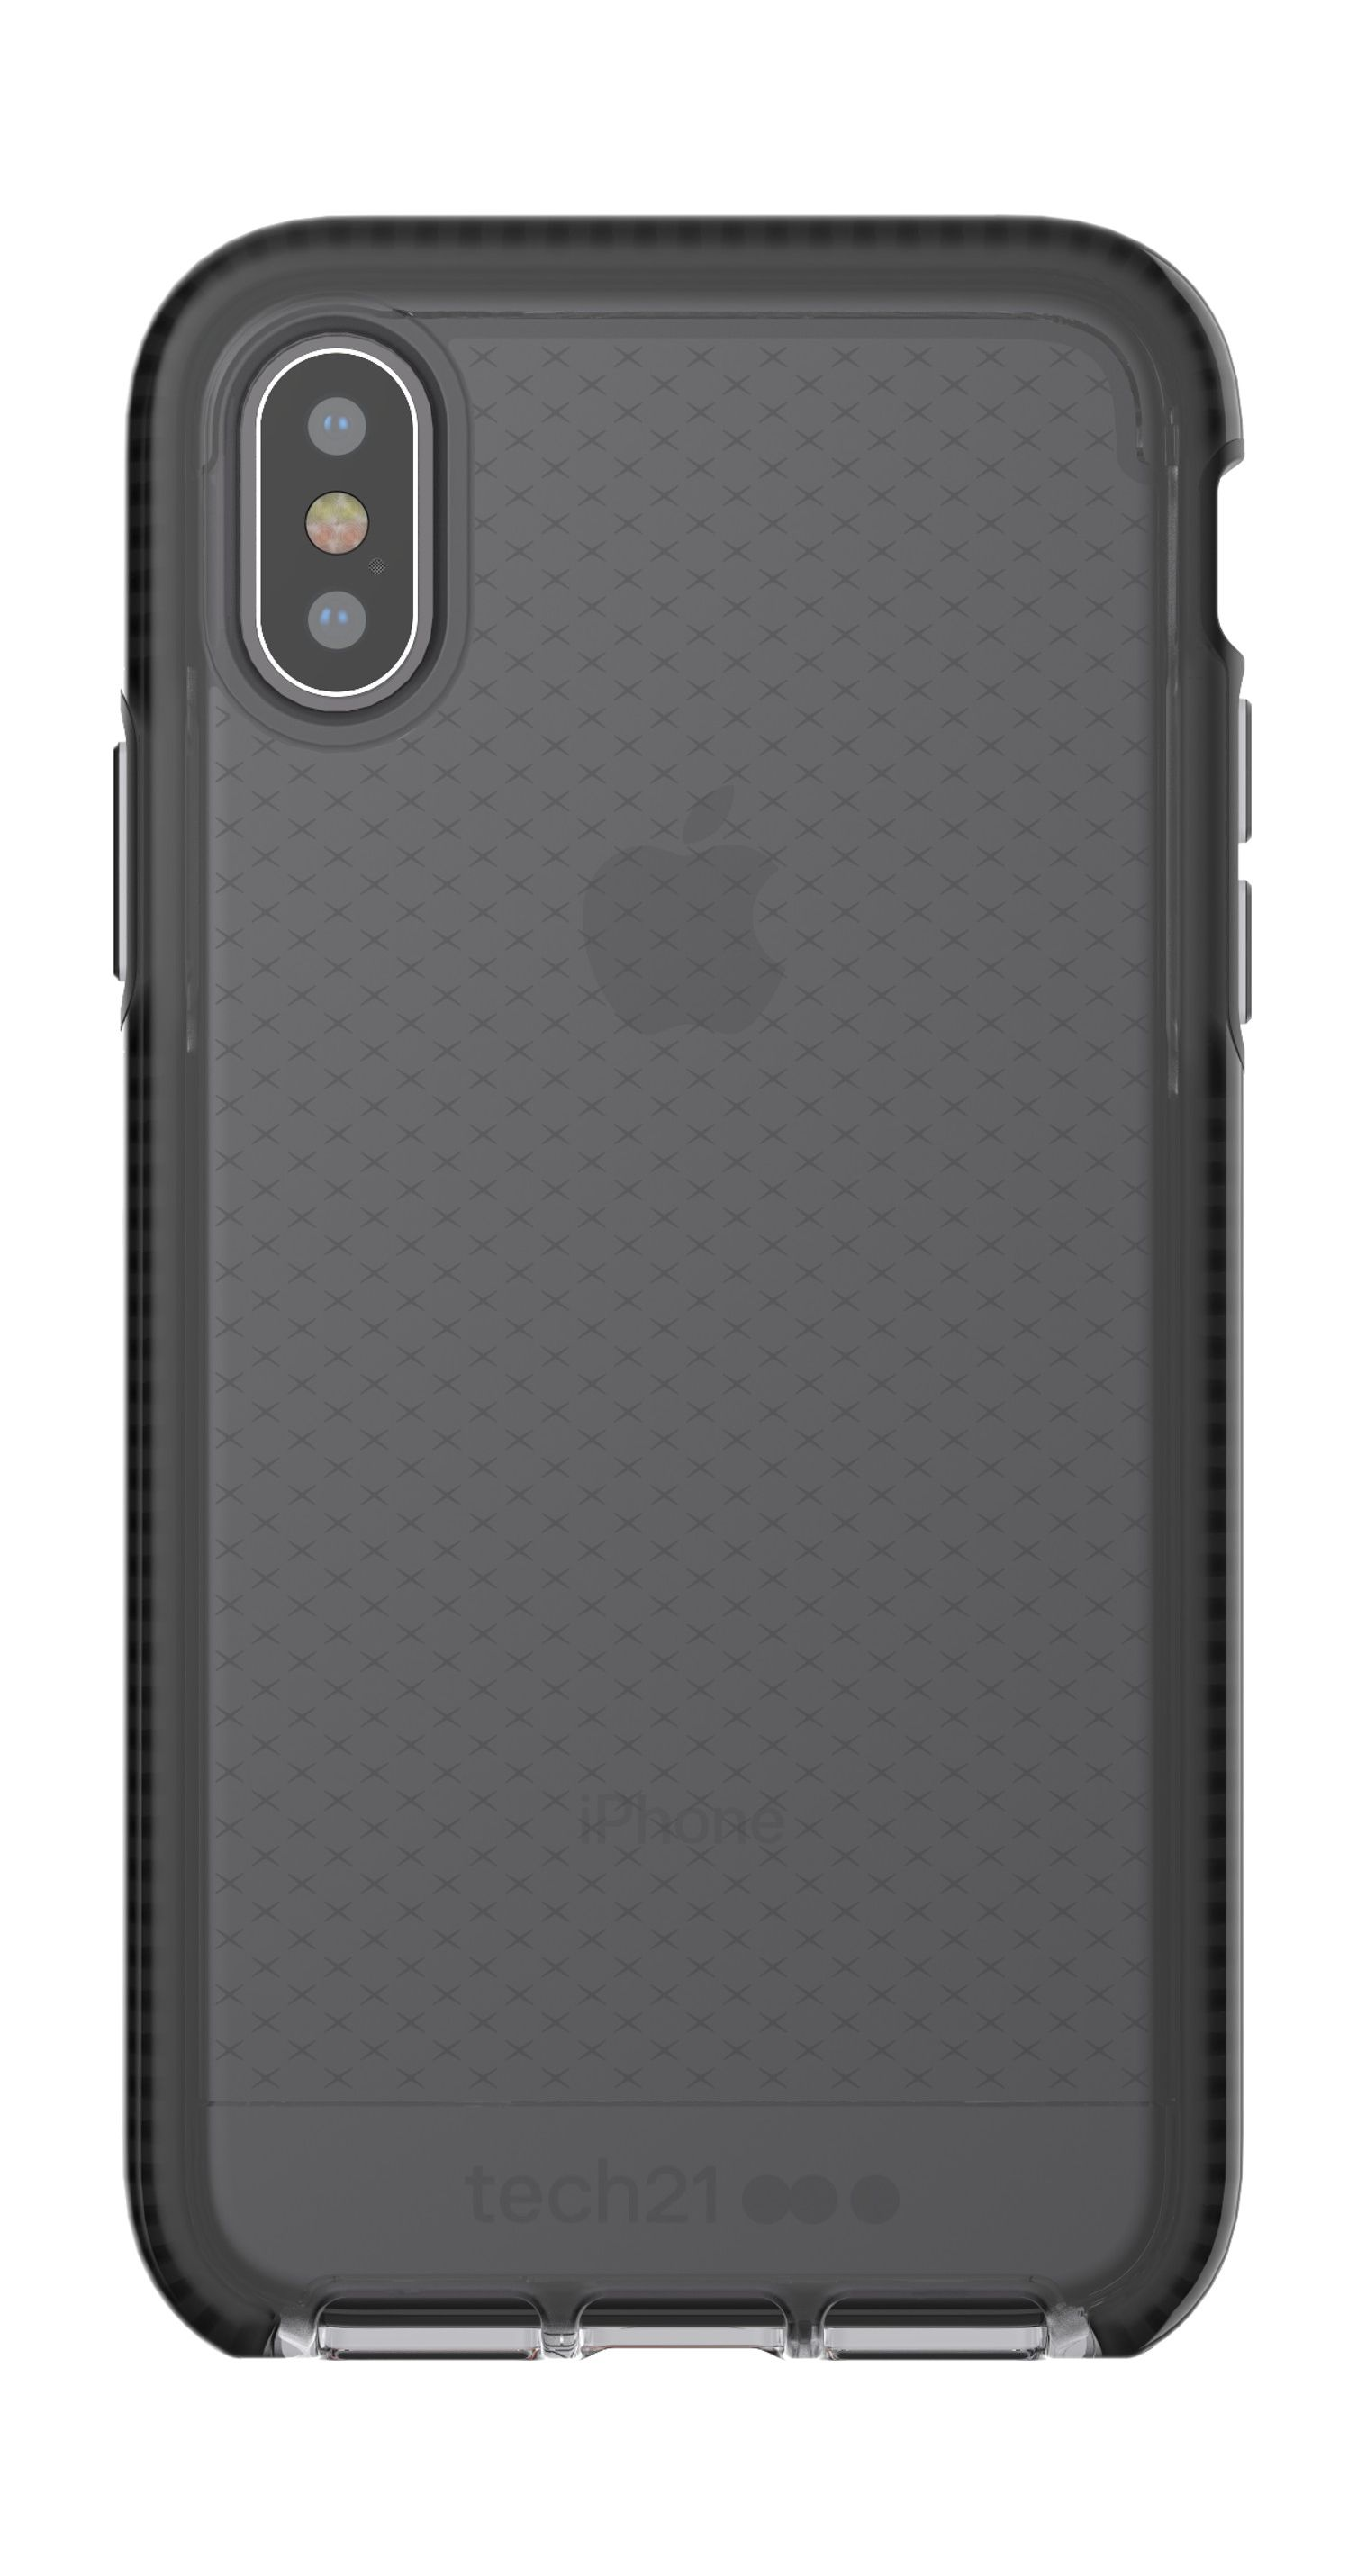 tech 21 iphone case tech 21 evo check for iphone x t21 5855 xcite kuwait 1132